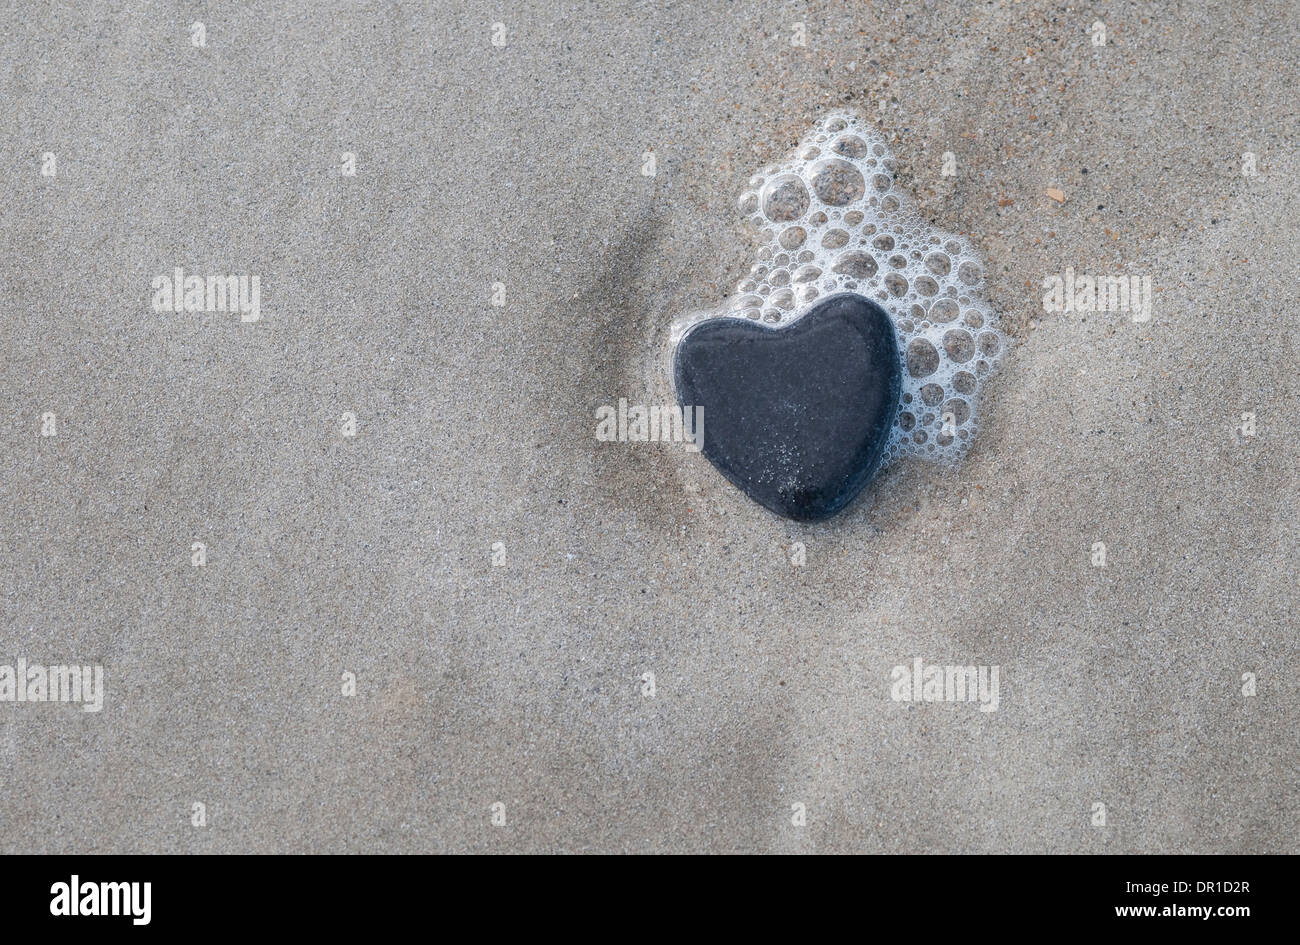 heart shaped stone on wet sand, normandy, france - Stock Image